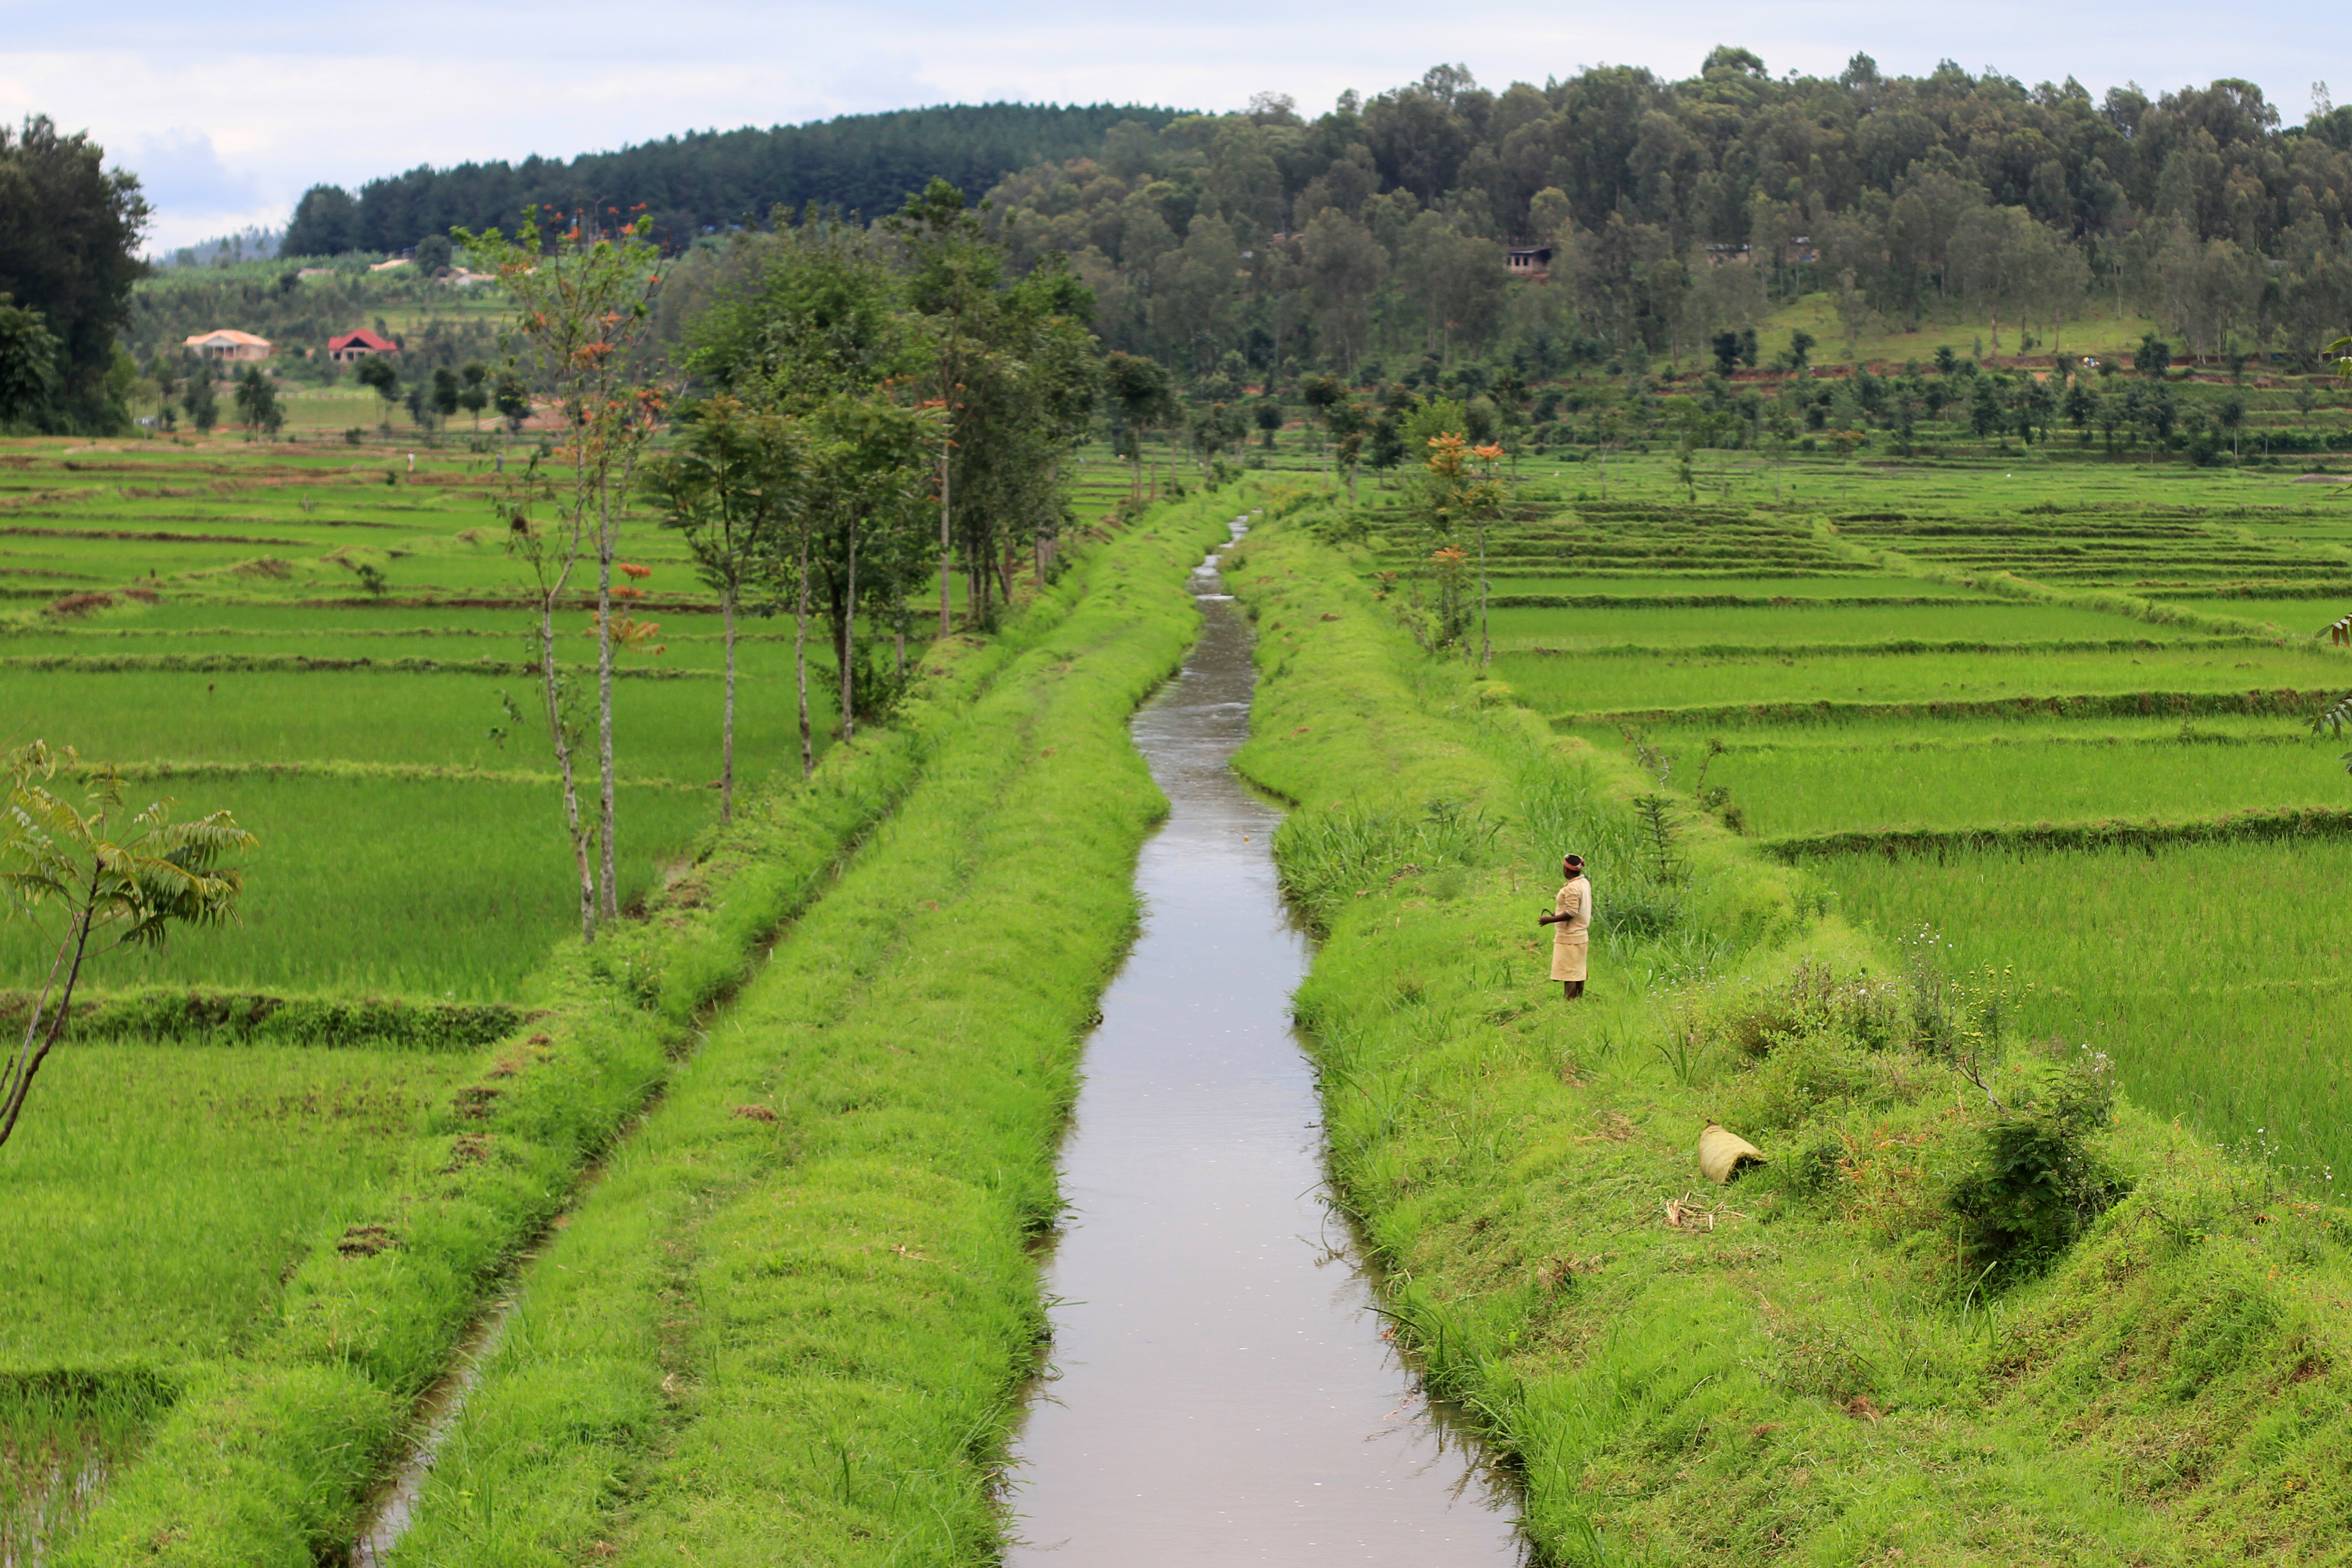 Rwanda Rice Paddies (credits: Adam Cohn / Flickr Creative Commons Attribution-NonCommercial-NoDerivs 2.0 Generic (CC BY-NC-ND 2.0))